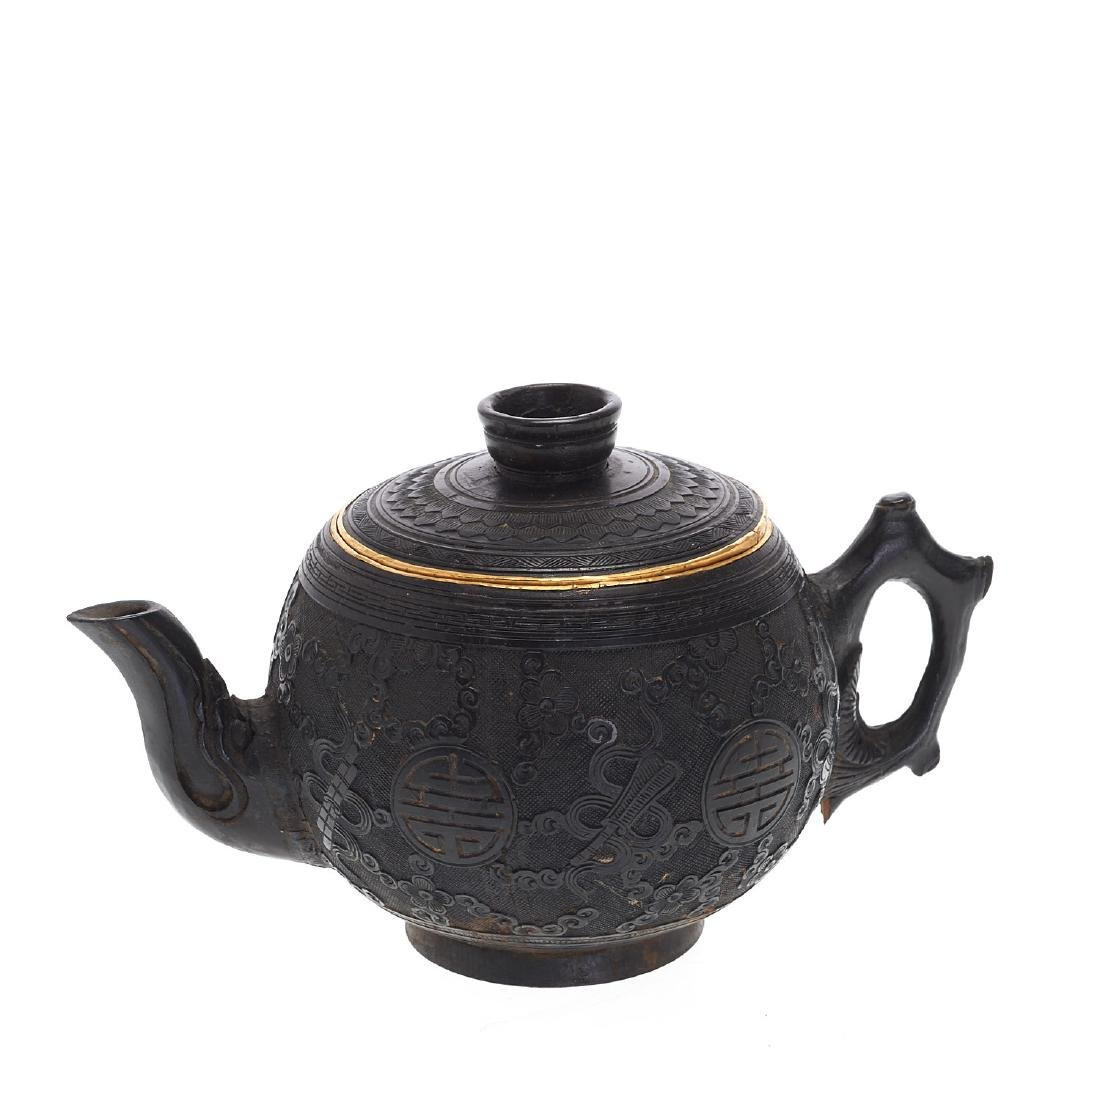 Chinese coconut shell and cinnabar lacquer teapot